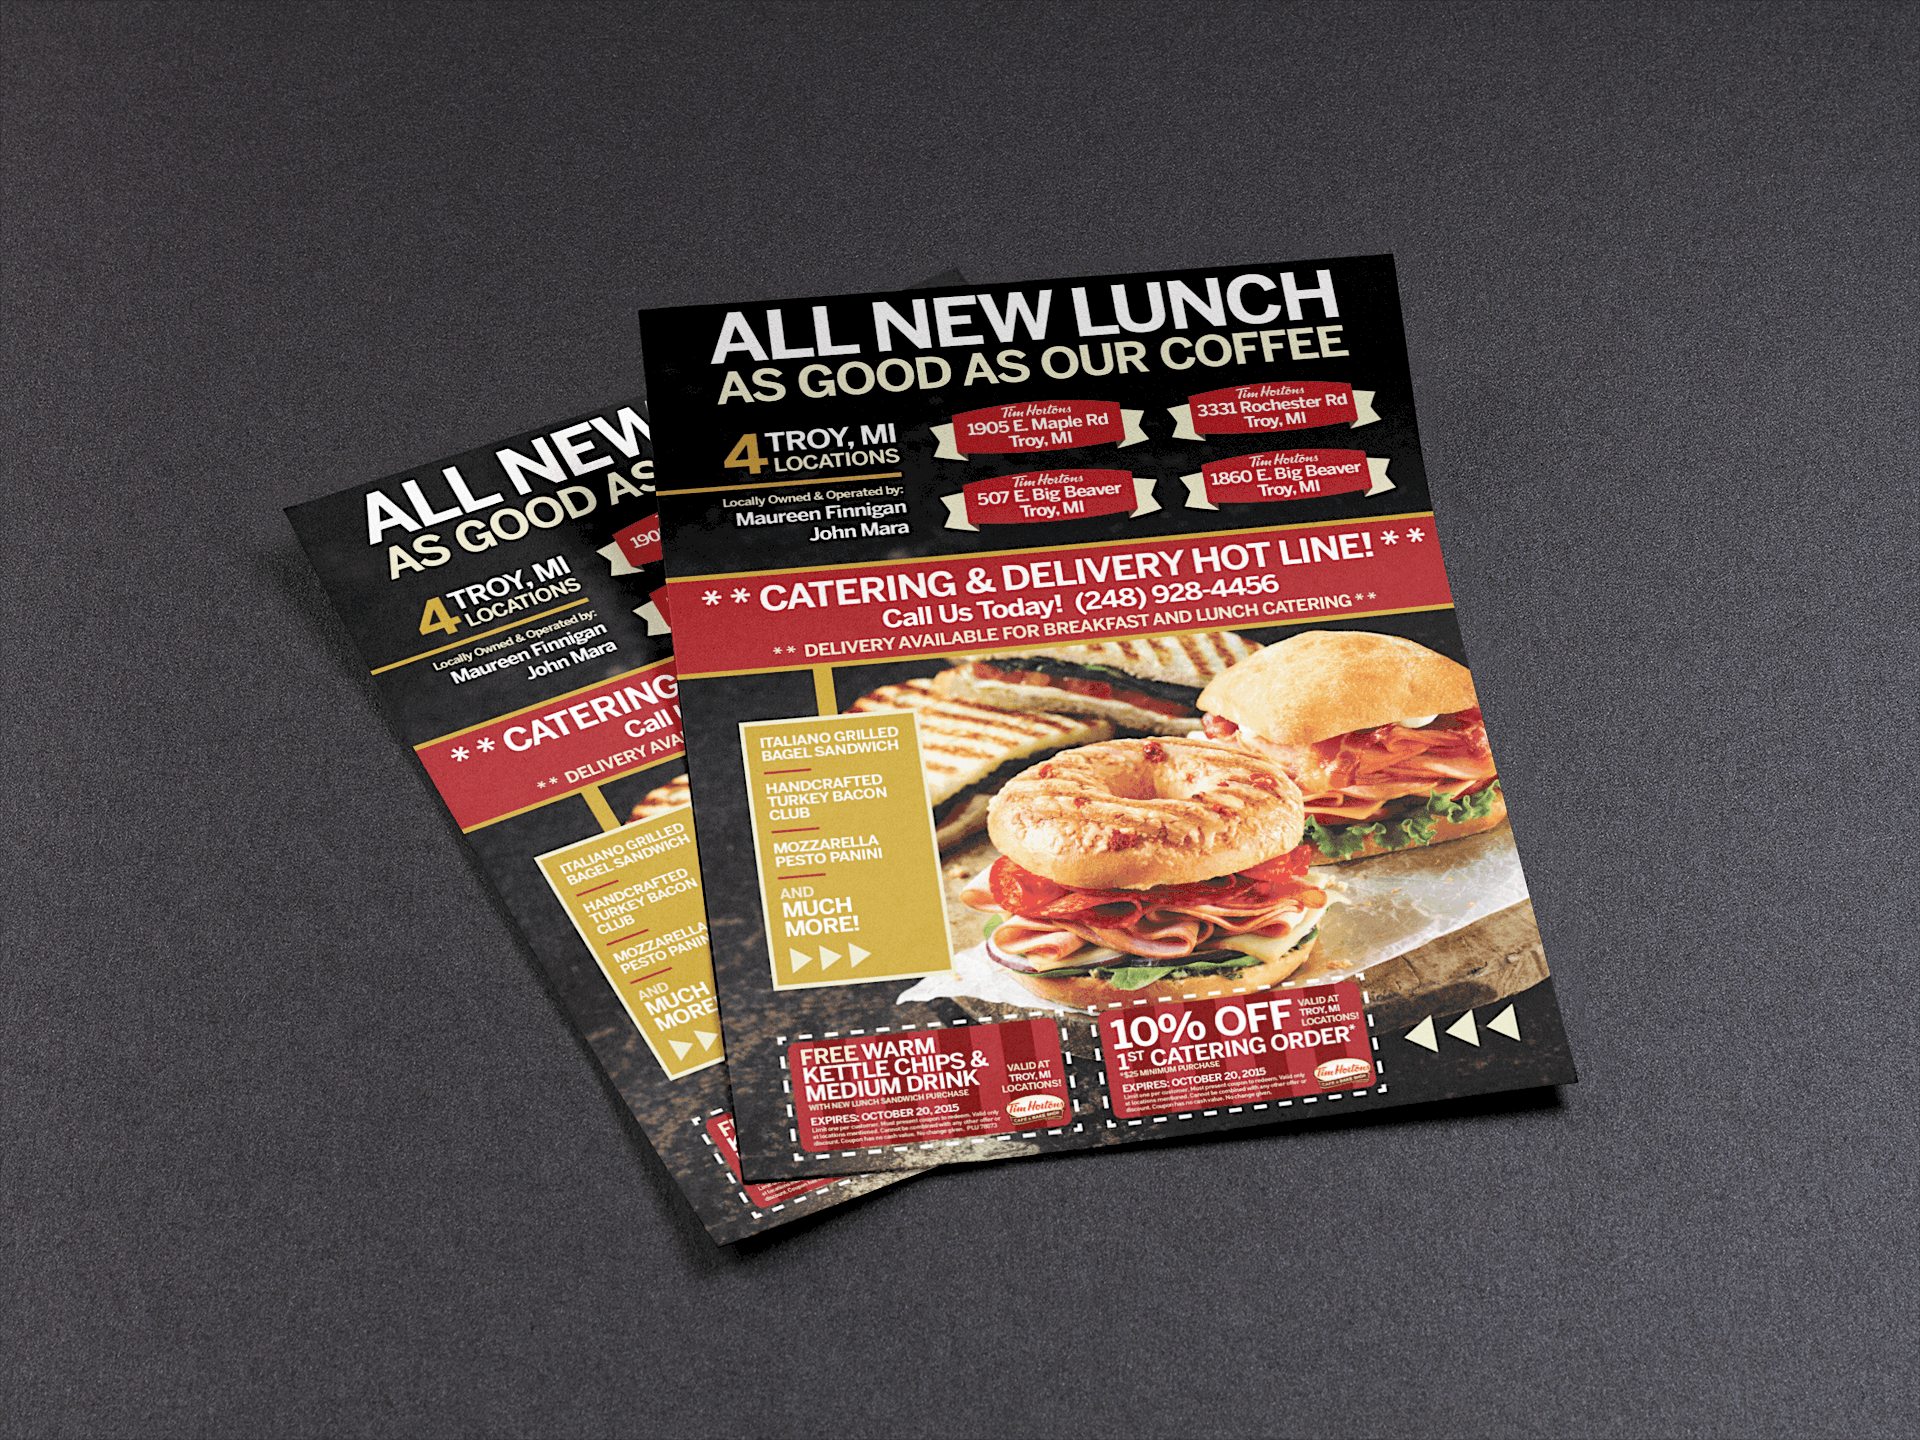 TH Ad - All New Lunch